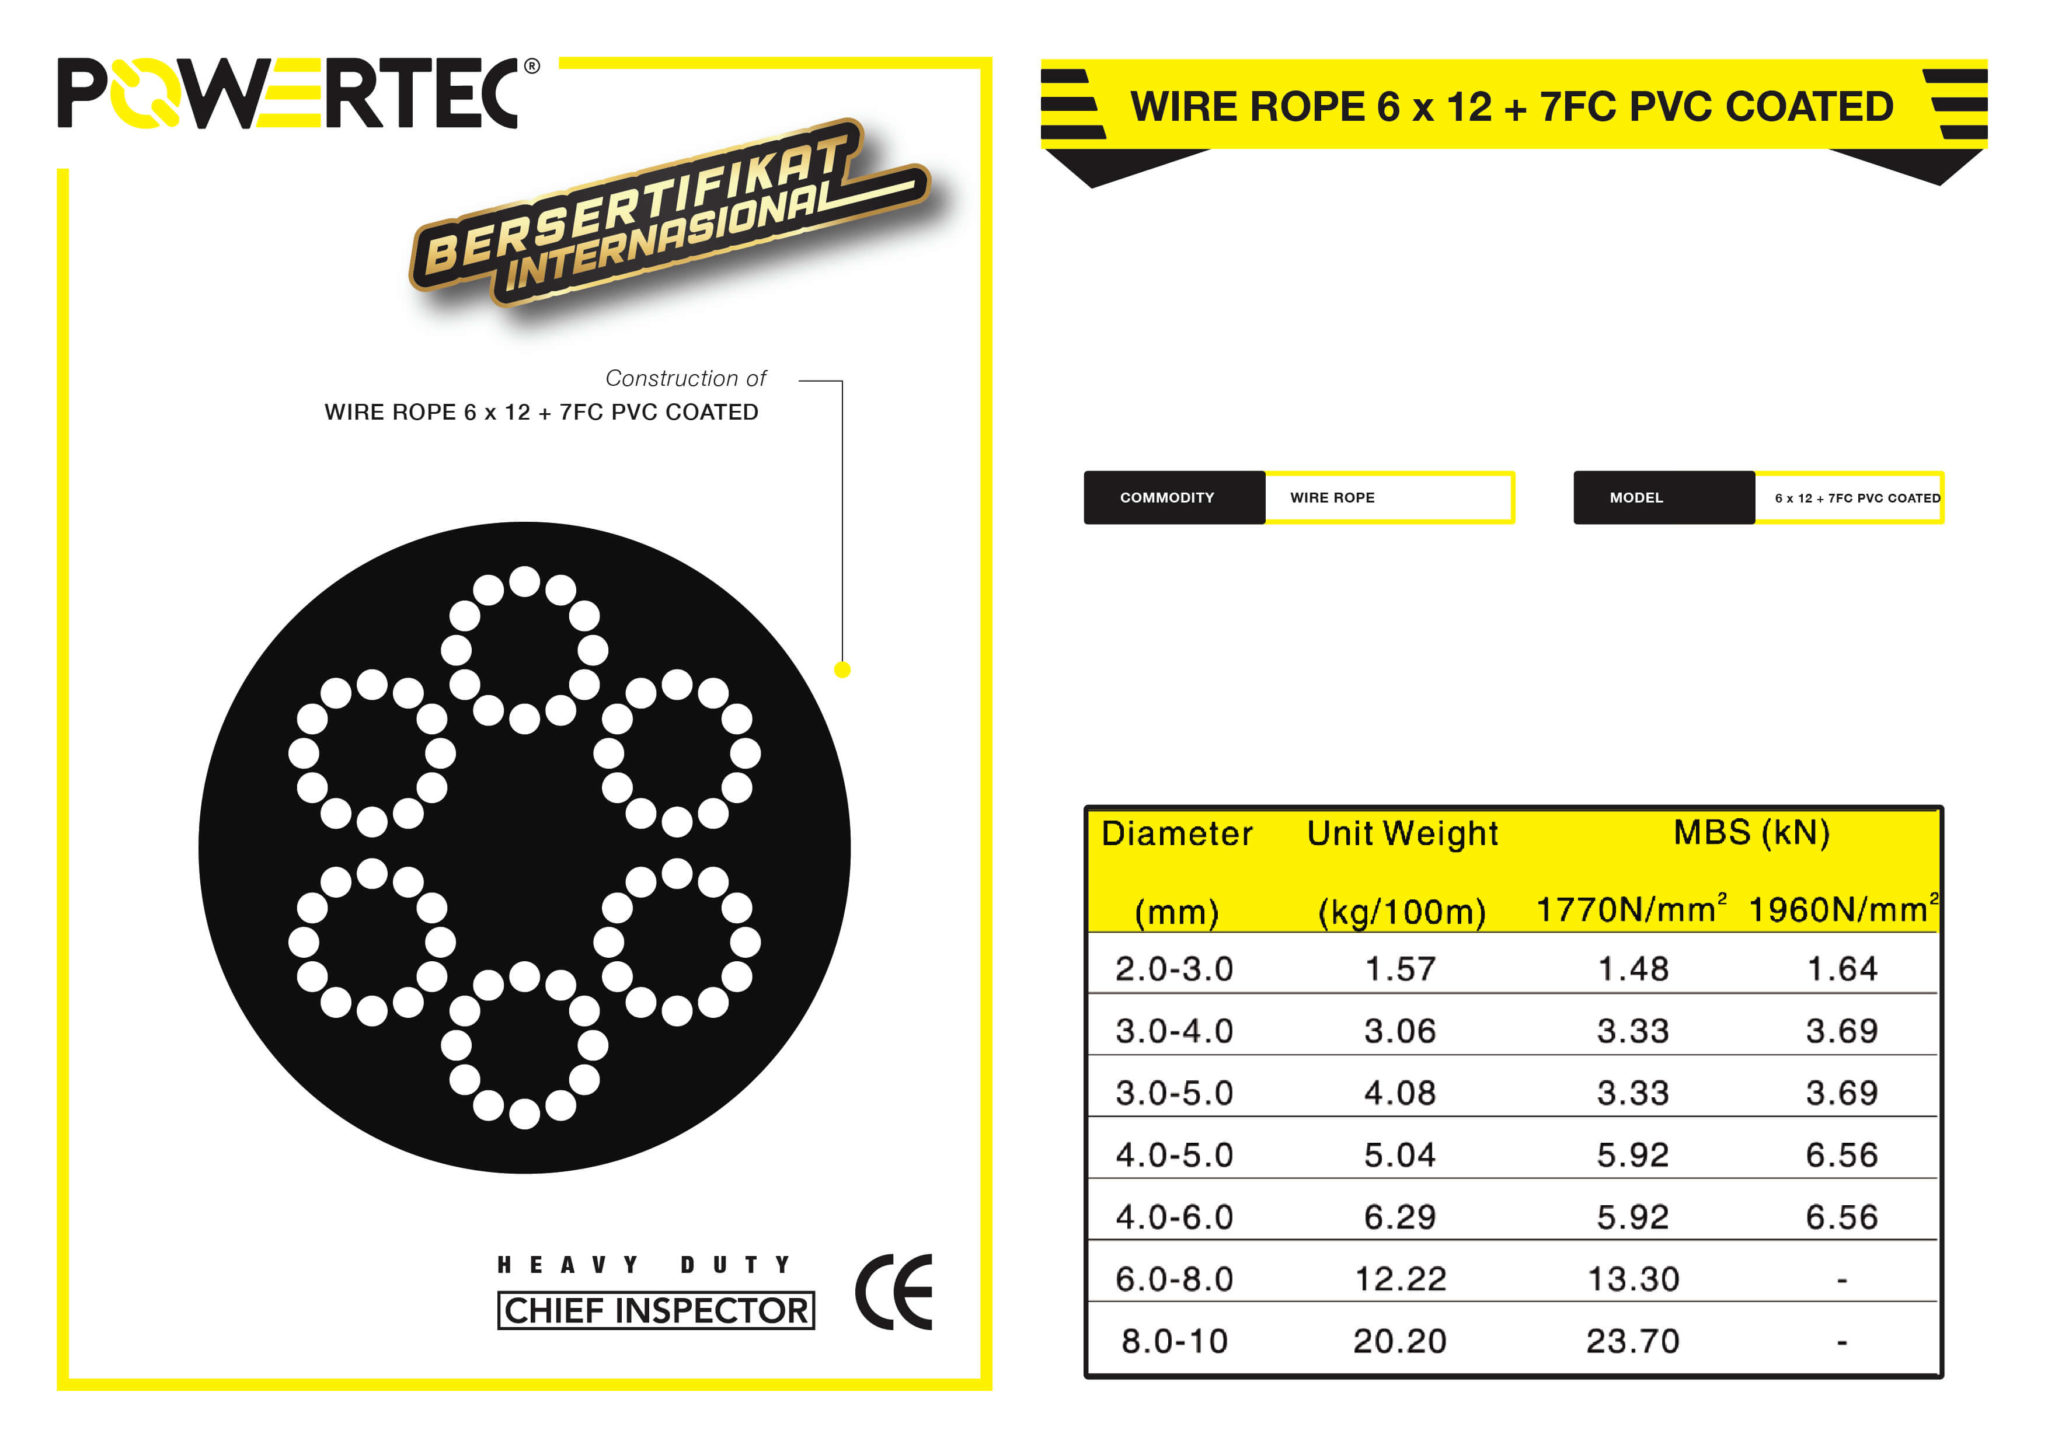 POWERTEC WIRE ROPE 6 x 12 + 7FC PVC COATED BROCHURE